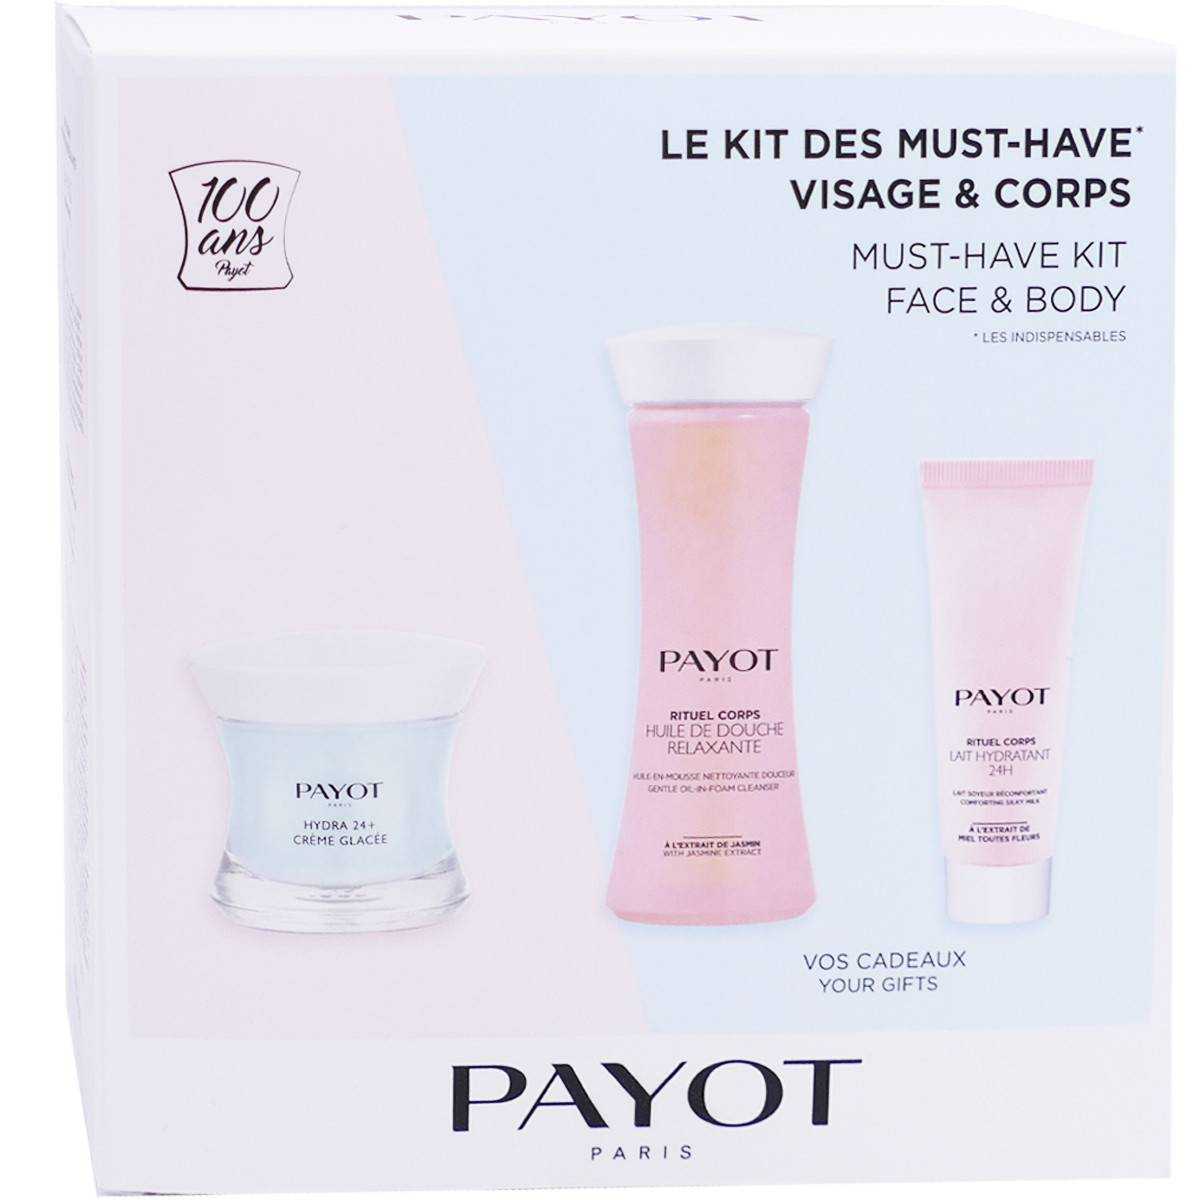 Payot kit des must-have visage & corps 3 soins